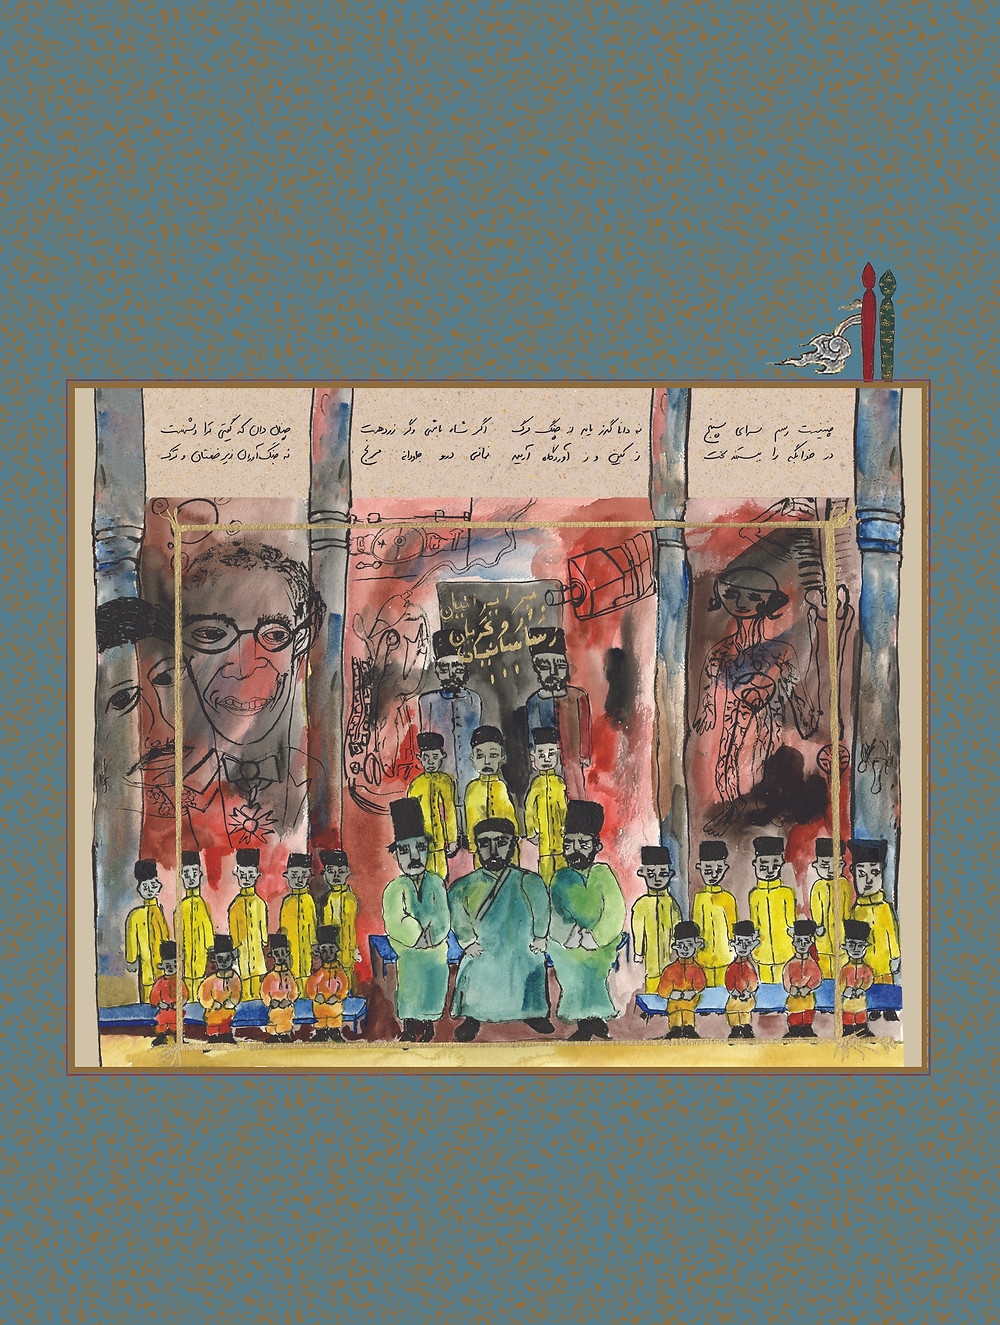 """Artemis Akchoti Shahbazi, """"The Dar Al-Fonon is established"""", from the series """"Other Kings… Other Stories…"""" , a collaboration with Cyrus Samii, completed in 2019."""